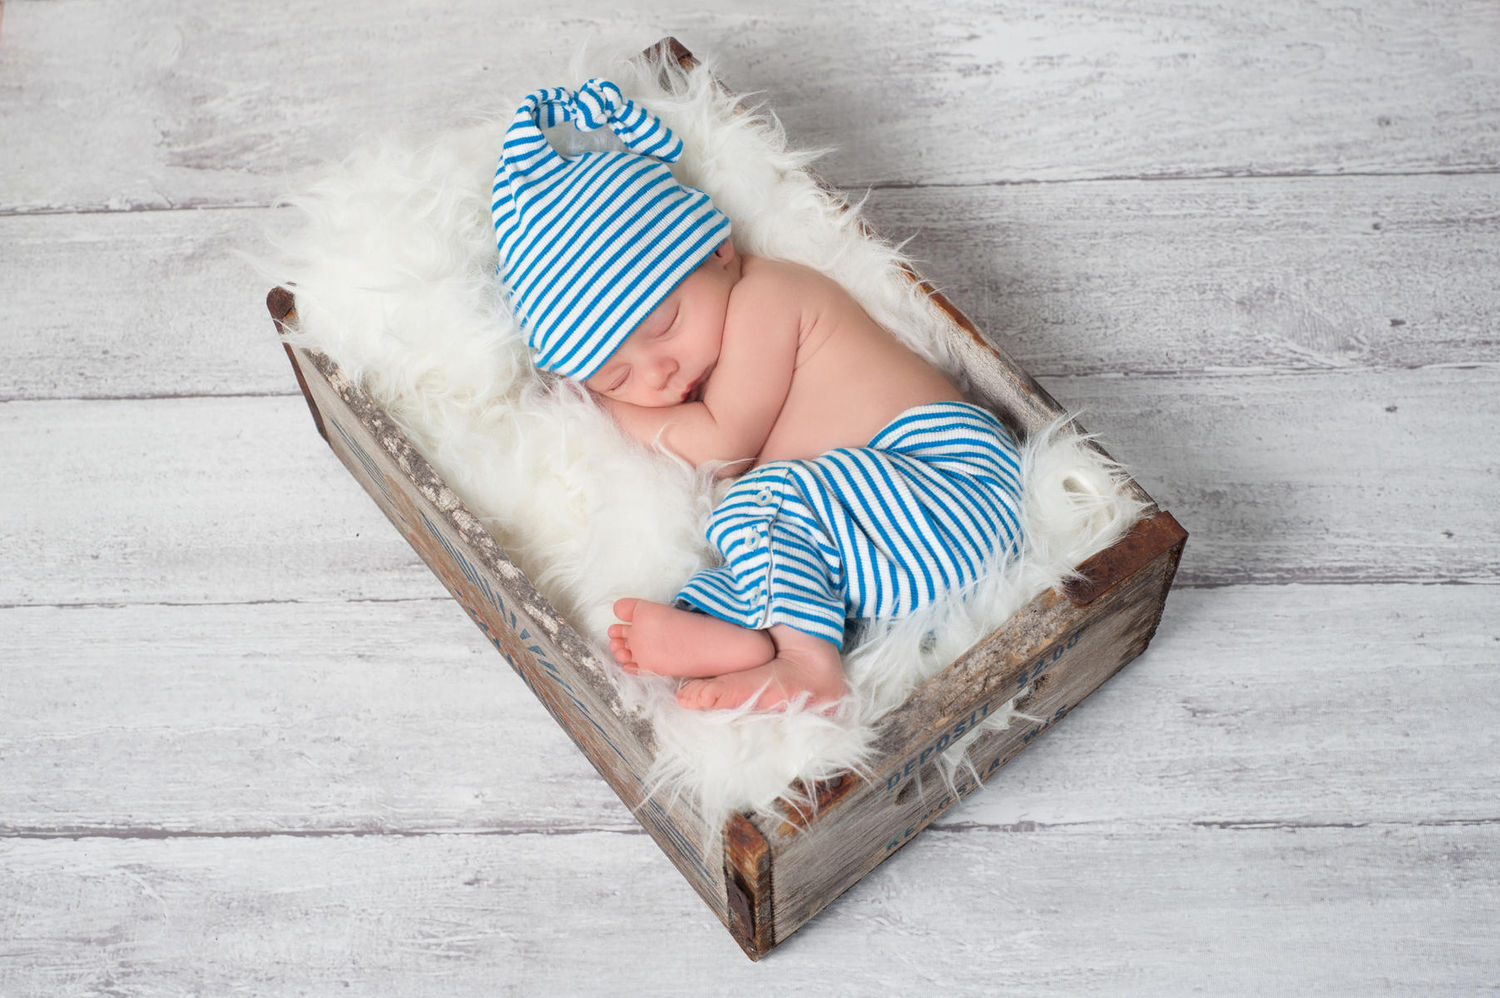 Best way for baby to sleep in crib - Best Way For Baby To Sleep In Crib 57